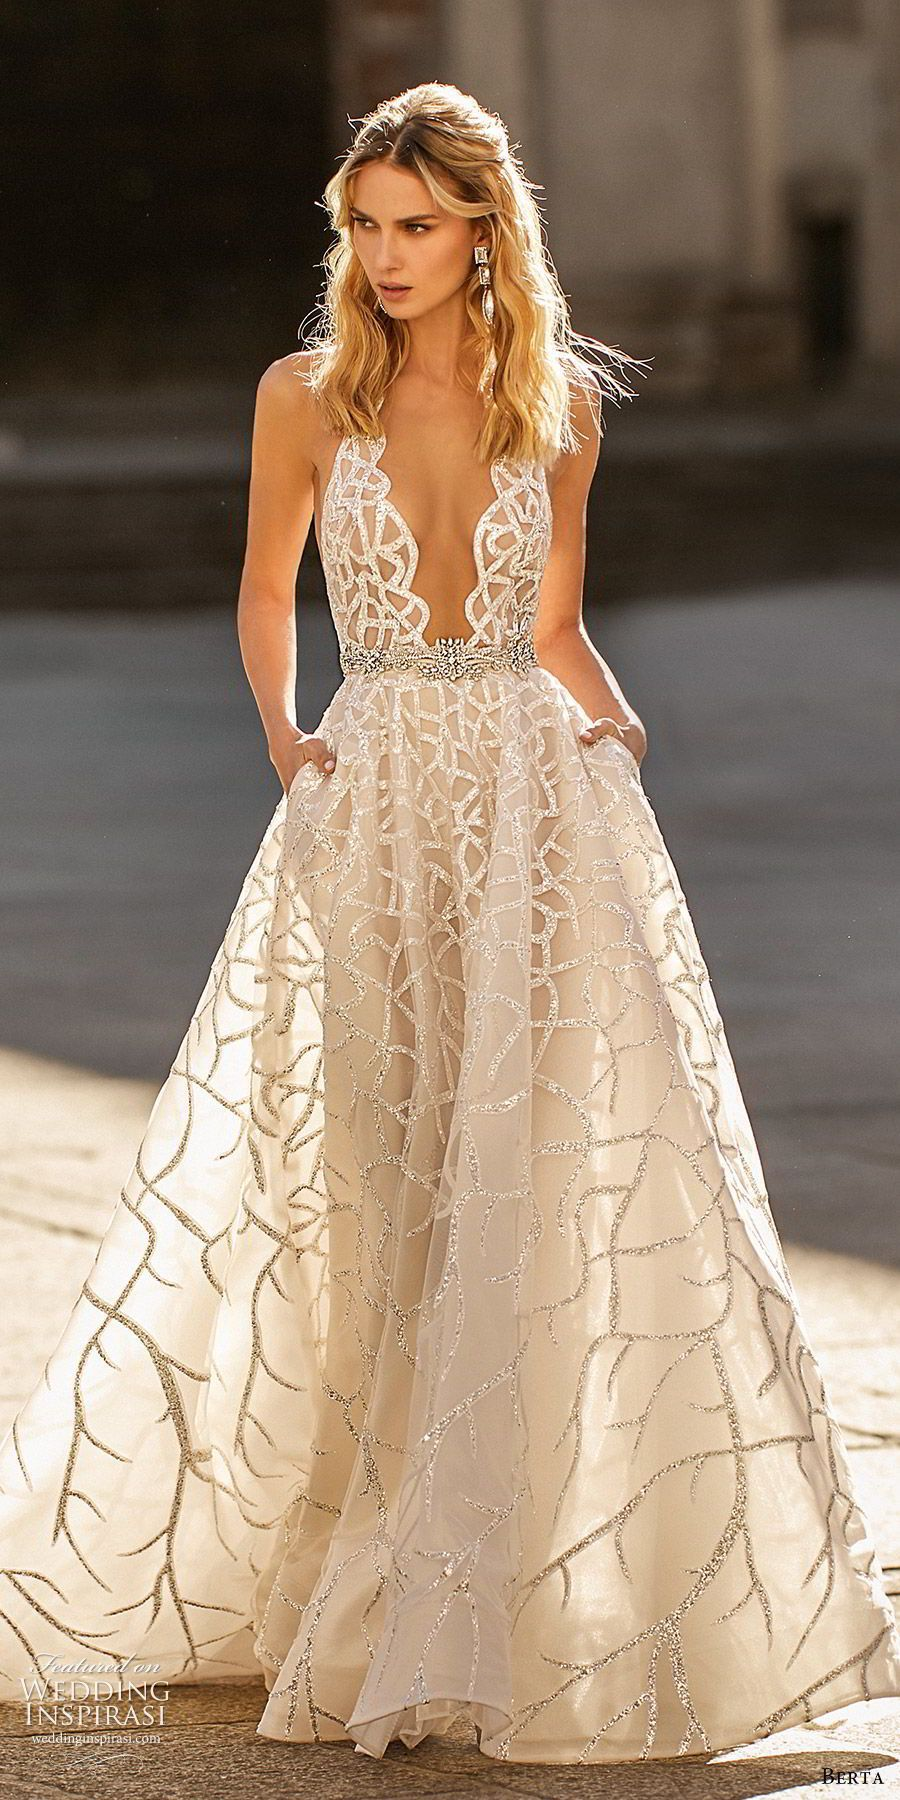 berta spring 2020 bridal sleeveless hatler neck plunging neckline fully embellished a line ball gown wedding dress (14) champagne glitzy princess chapel train mv -- Berta Spring 2020 Wedding Dresses | Wedding Inspirasi #wedding #weddings #bridal #weddingdress #weddingdresses #bride #fashion  ~ #bertaweddingdress